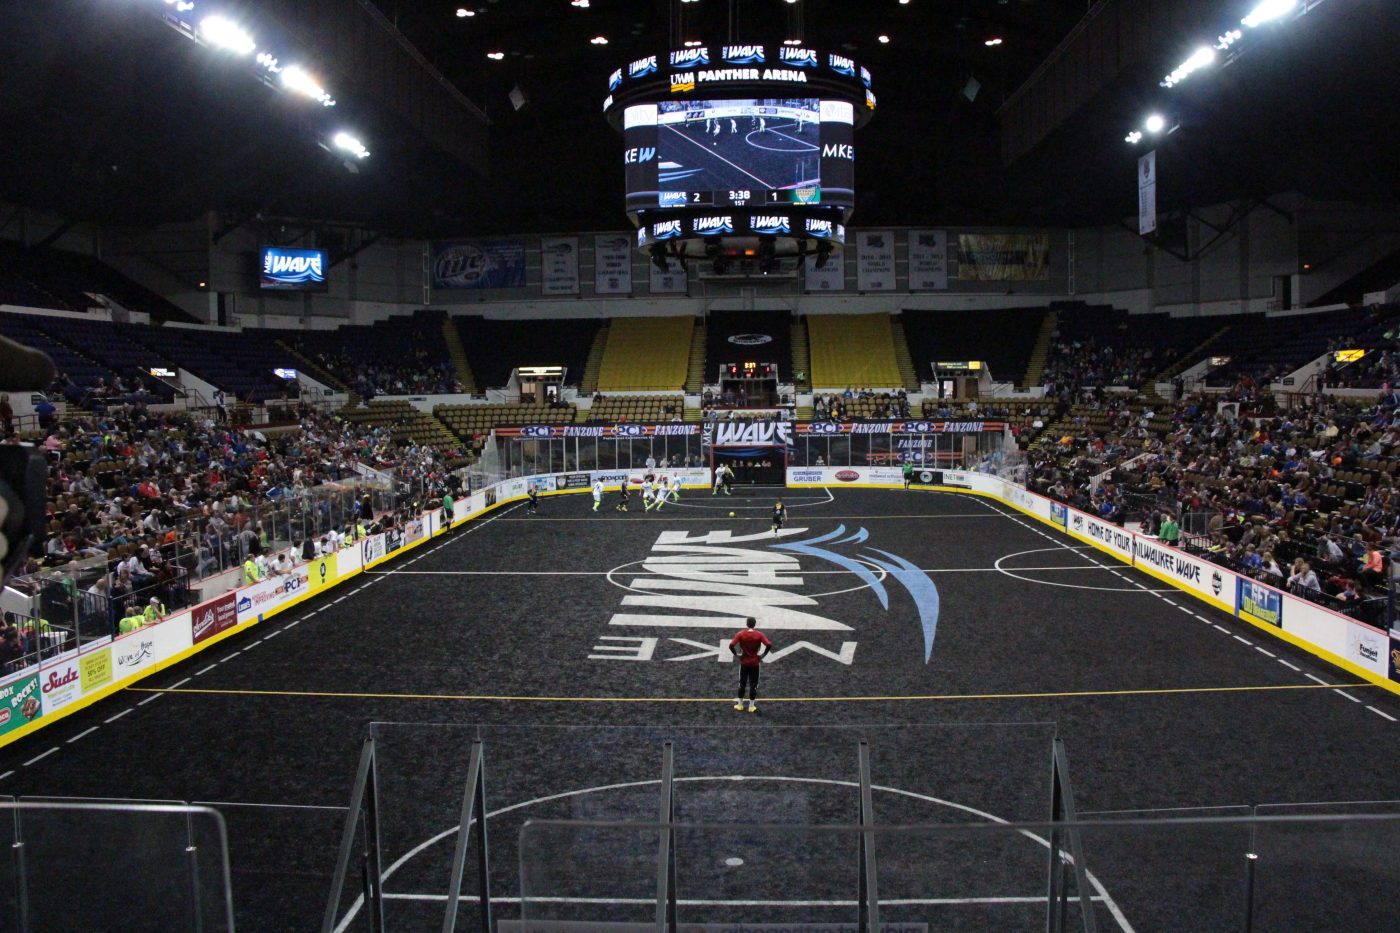 Fastgrass At740 Gives The Milwaukee Wave A True Home